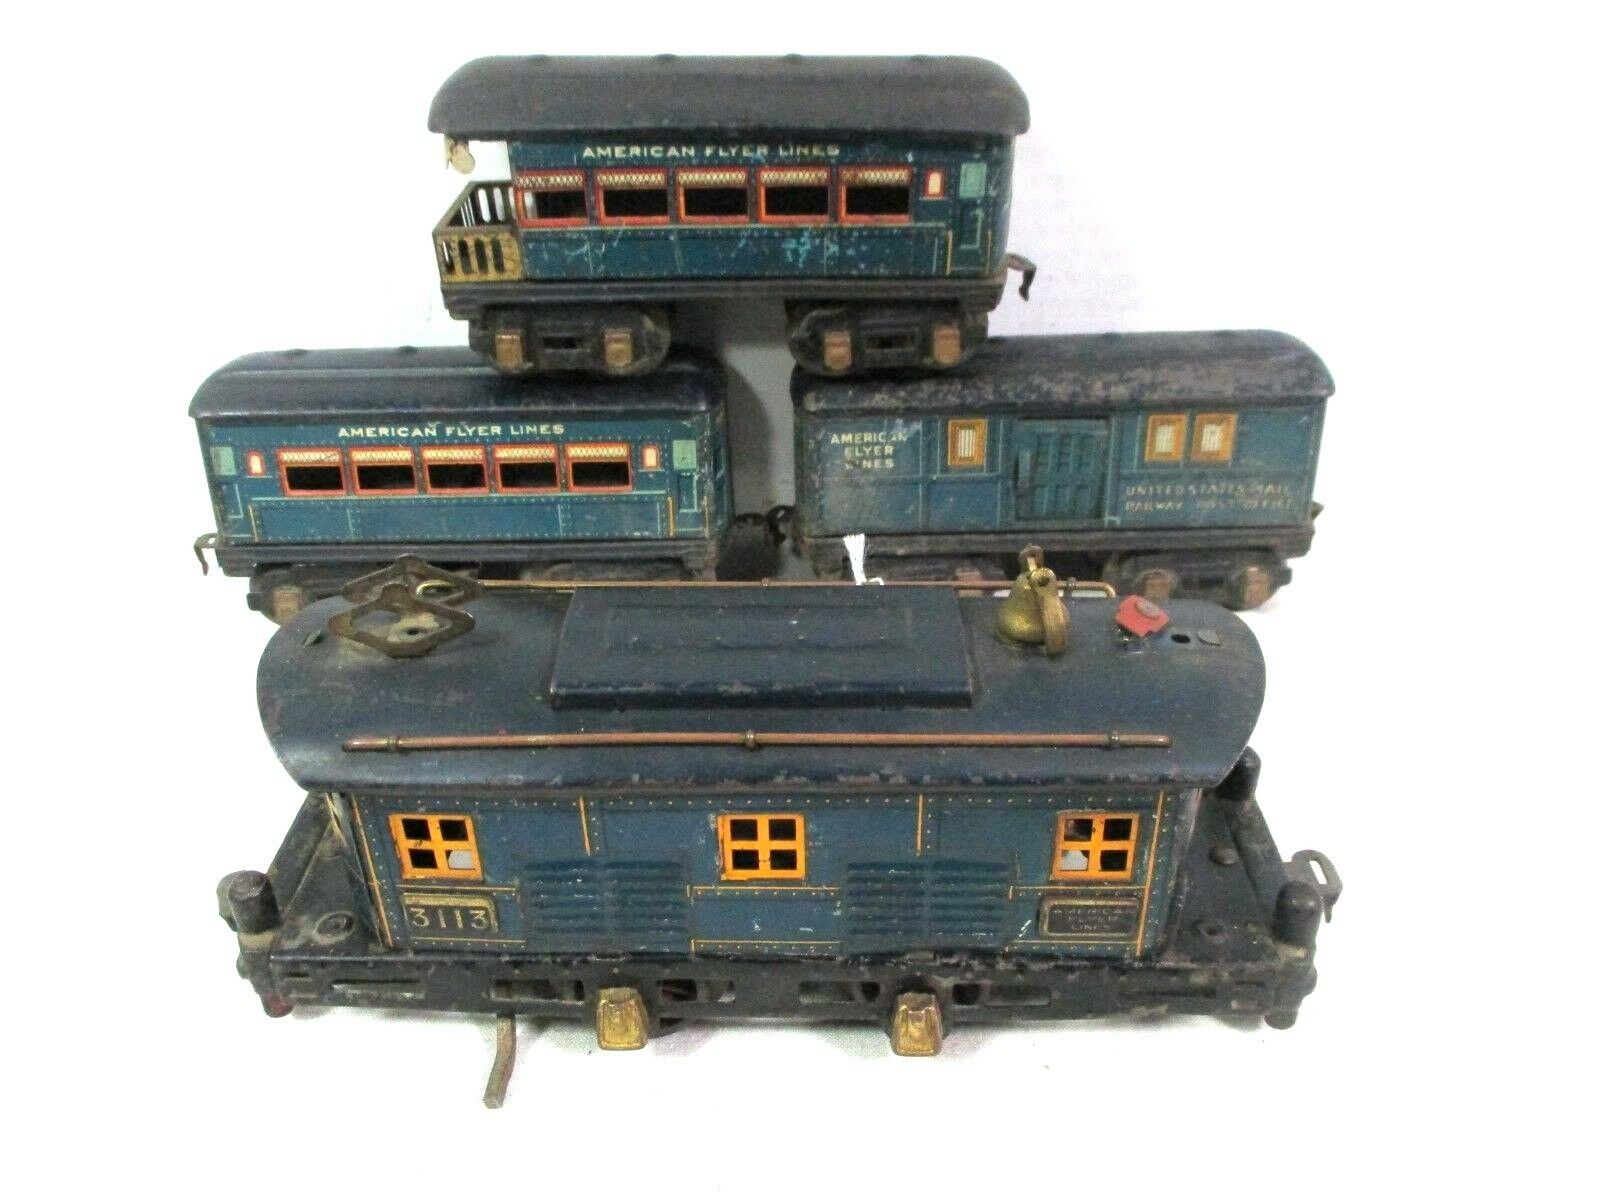 American Flyer blueebird 3113 Set O Gauge Pre War Vintage Model Train B19